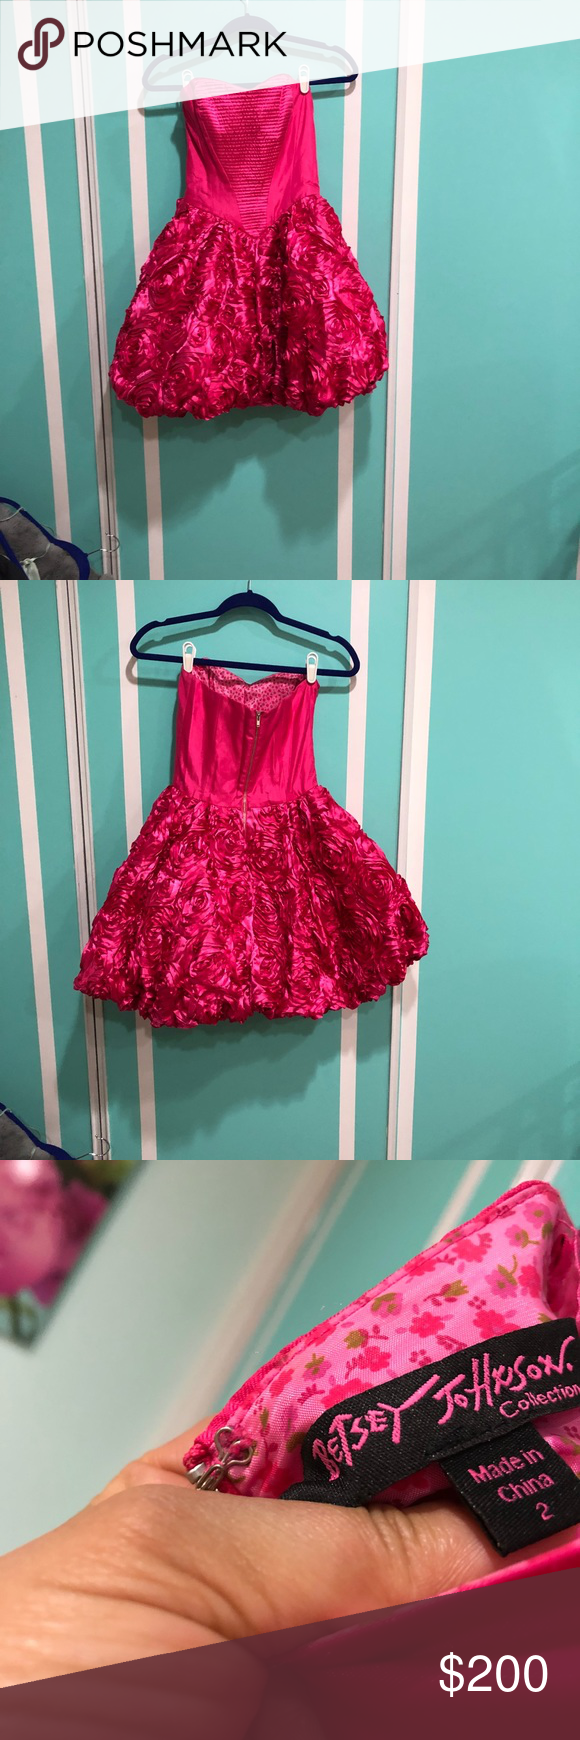 Betsy Johnson party dress | Betsey johnson and Customer support